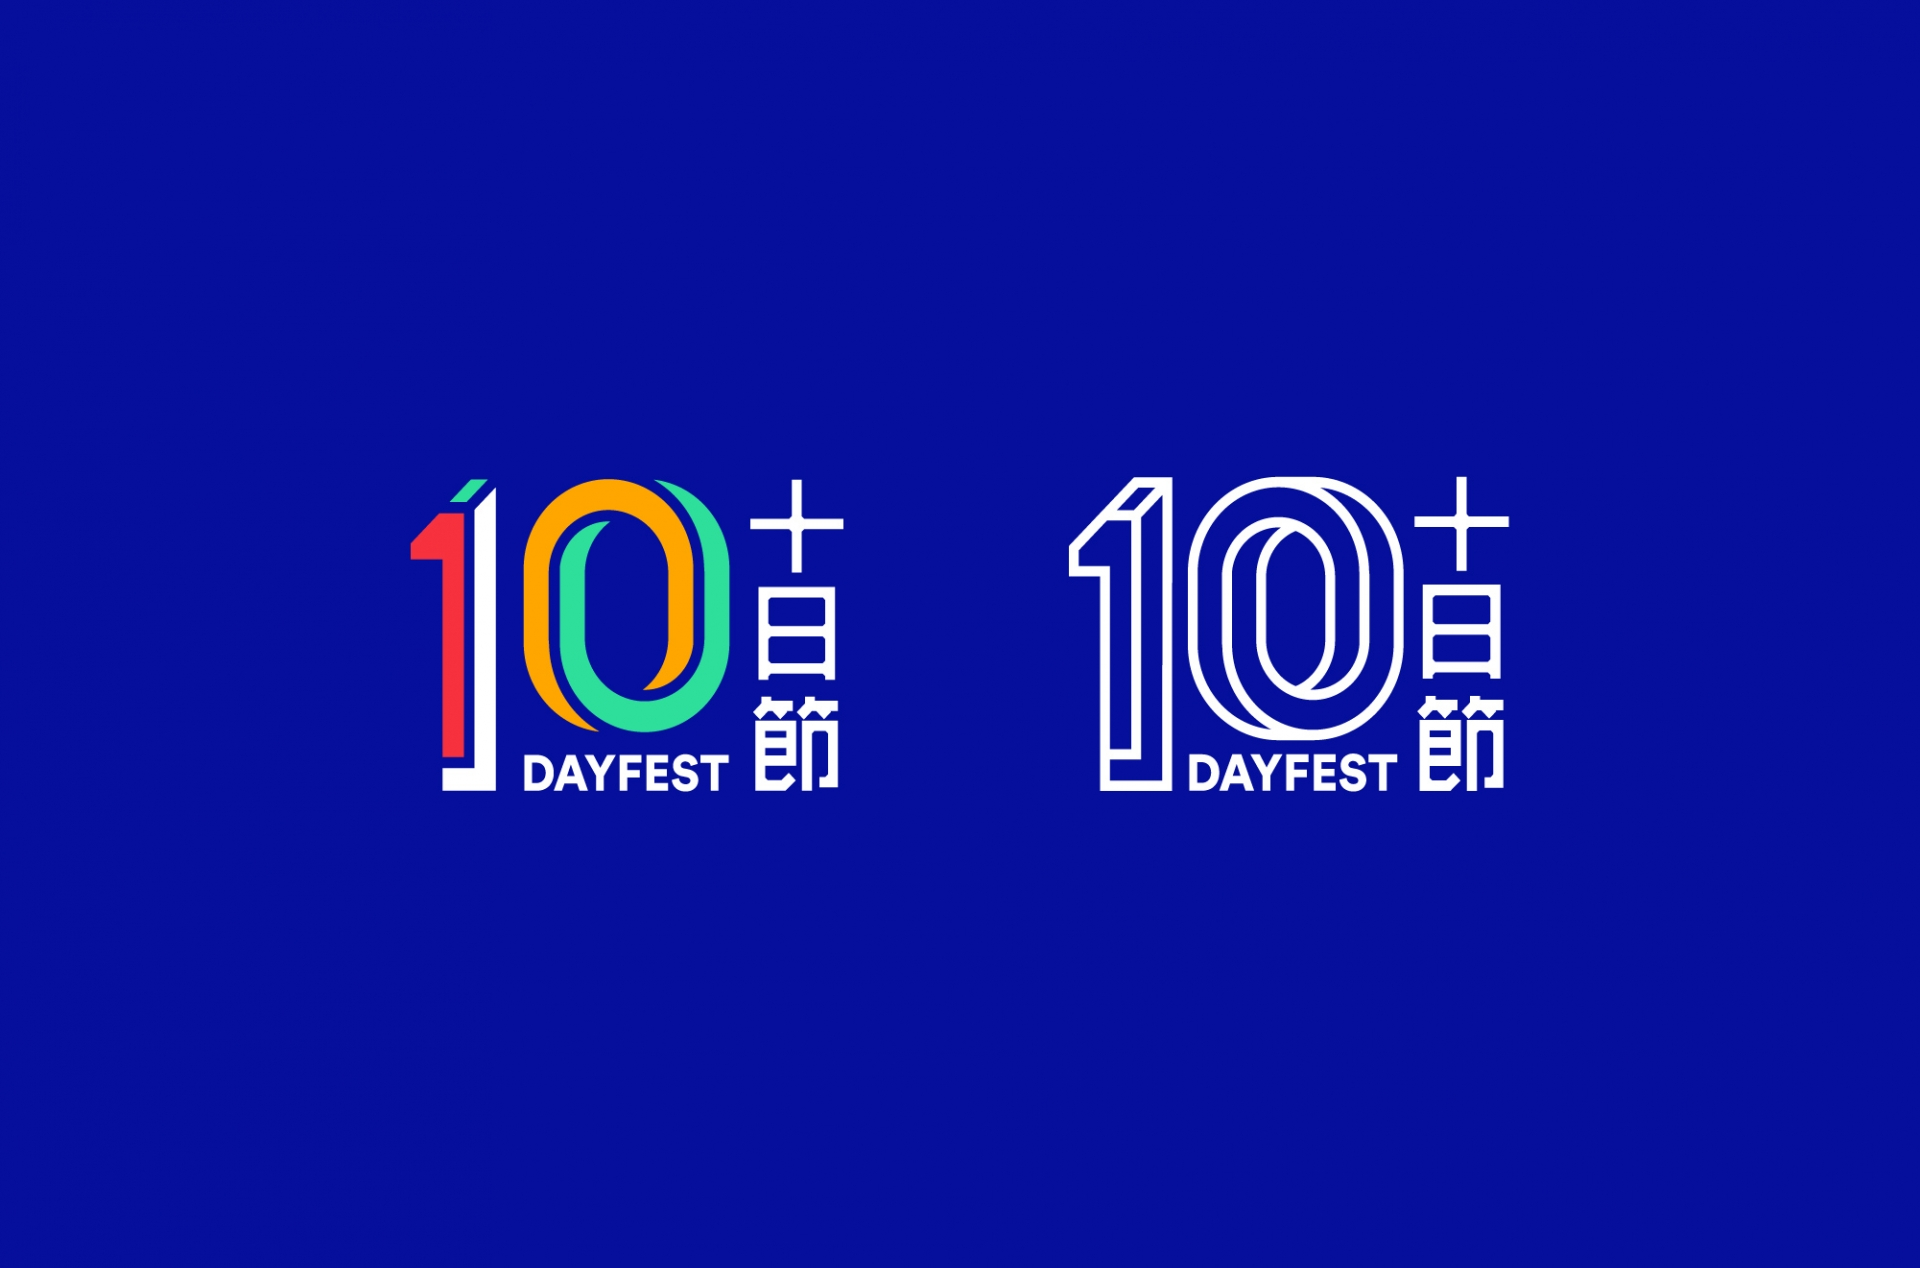 Good Morning Design 10DAYFEST 2015